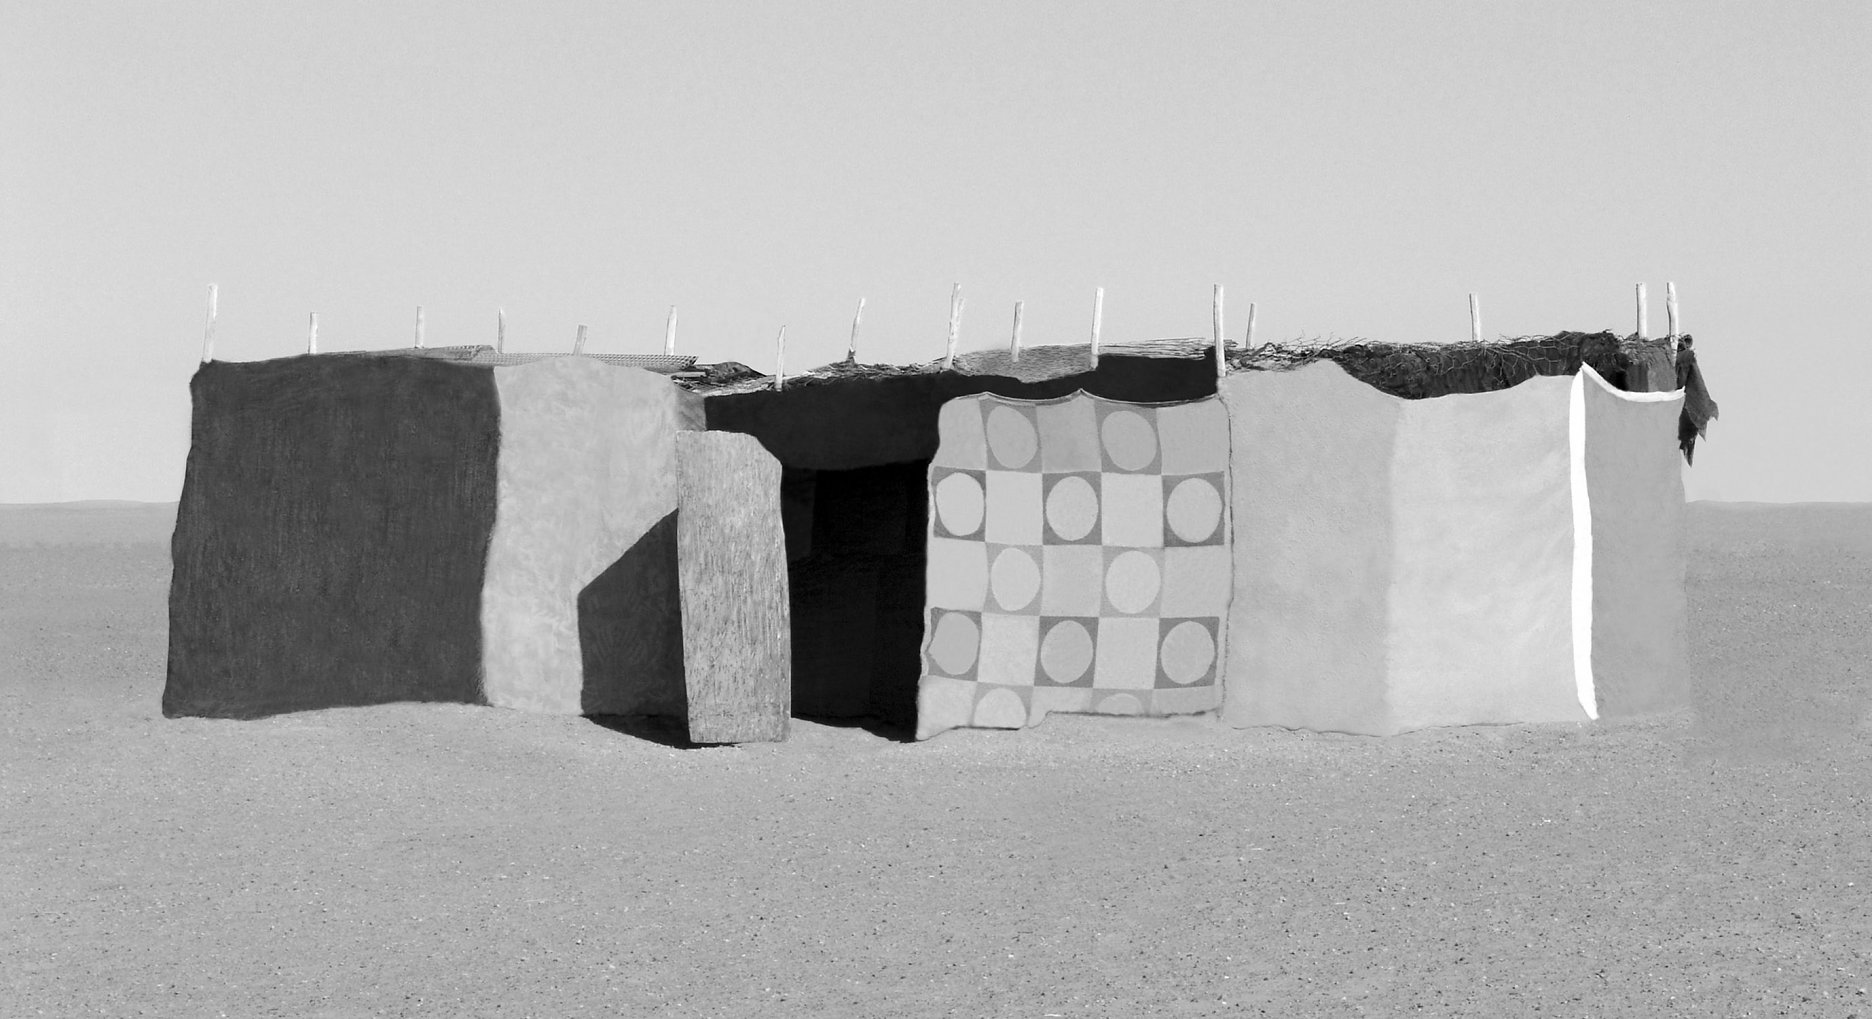 Erasing Non - Places 2, The Ordinary, Morocco, 2015